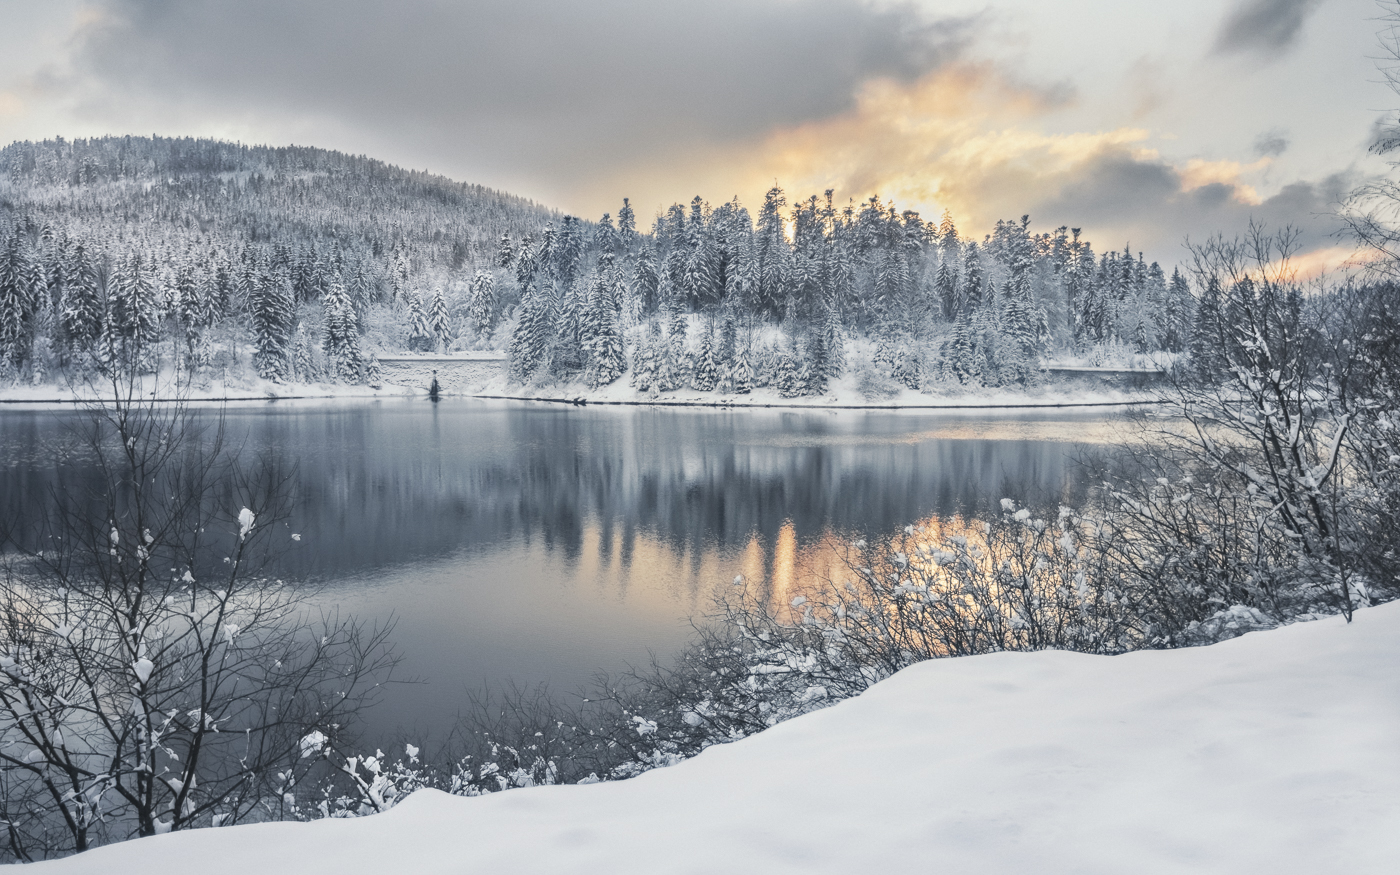 Winter at the Barrier Lake